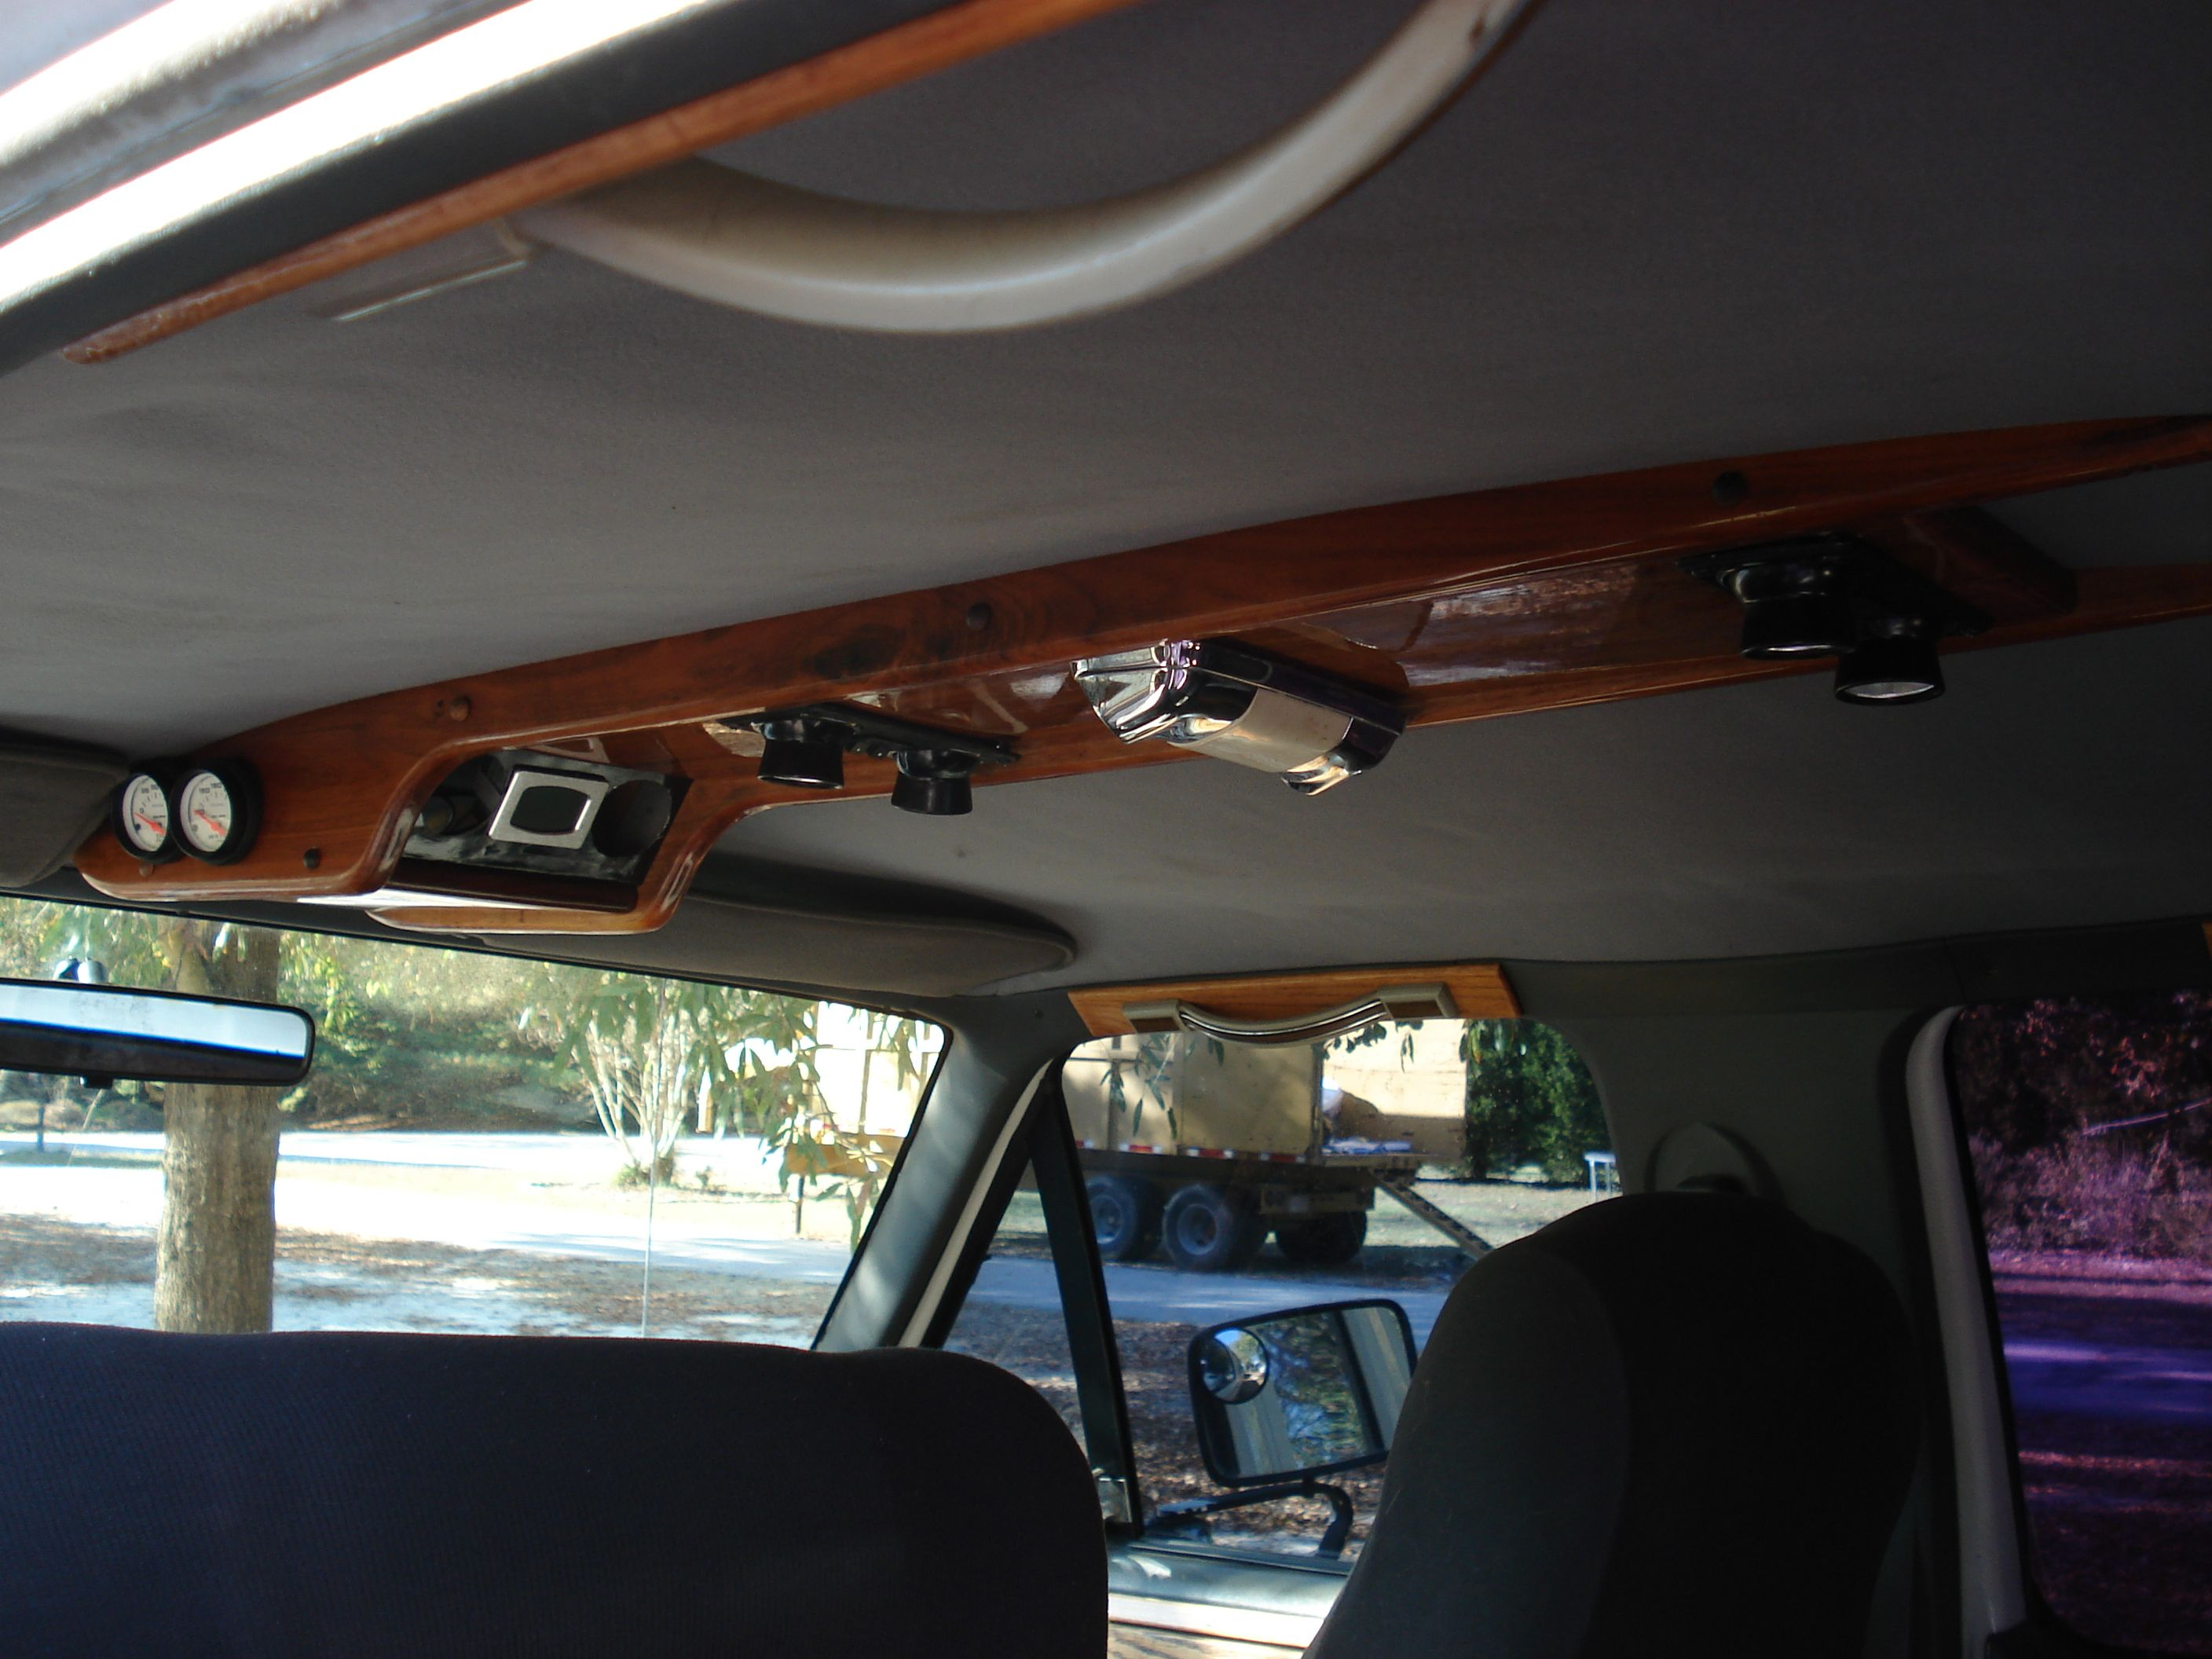 1992 Ford C 350 Centurion Conversions Overhead Console And Extra